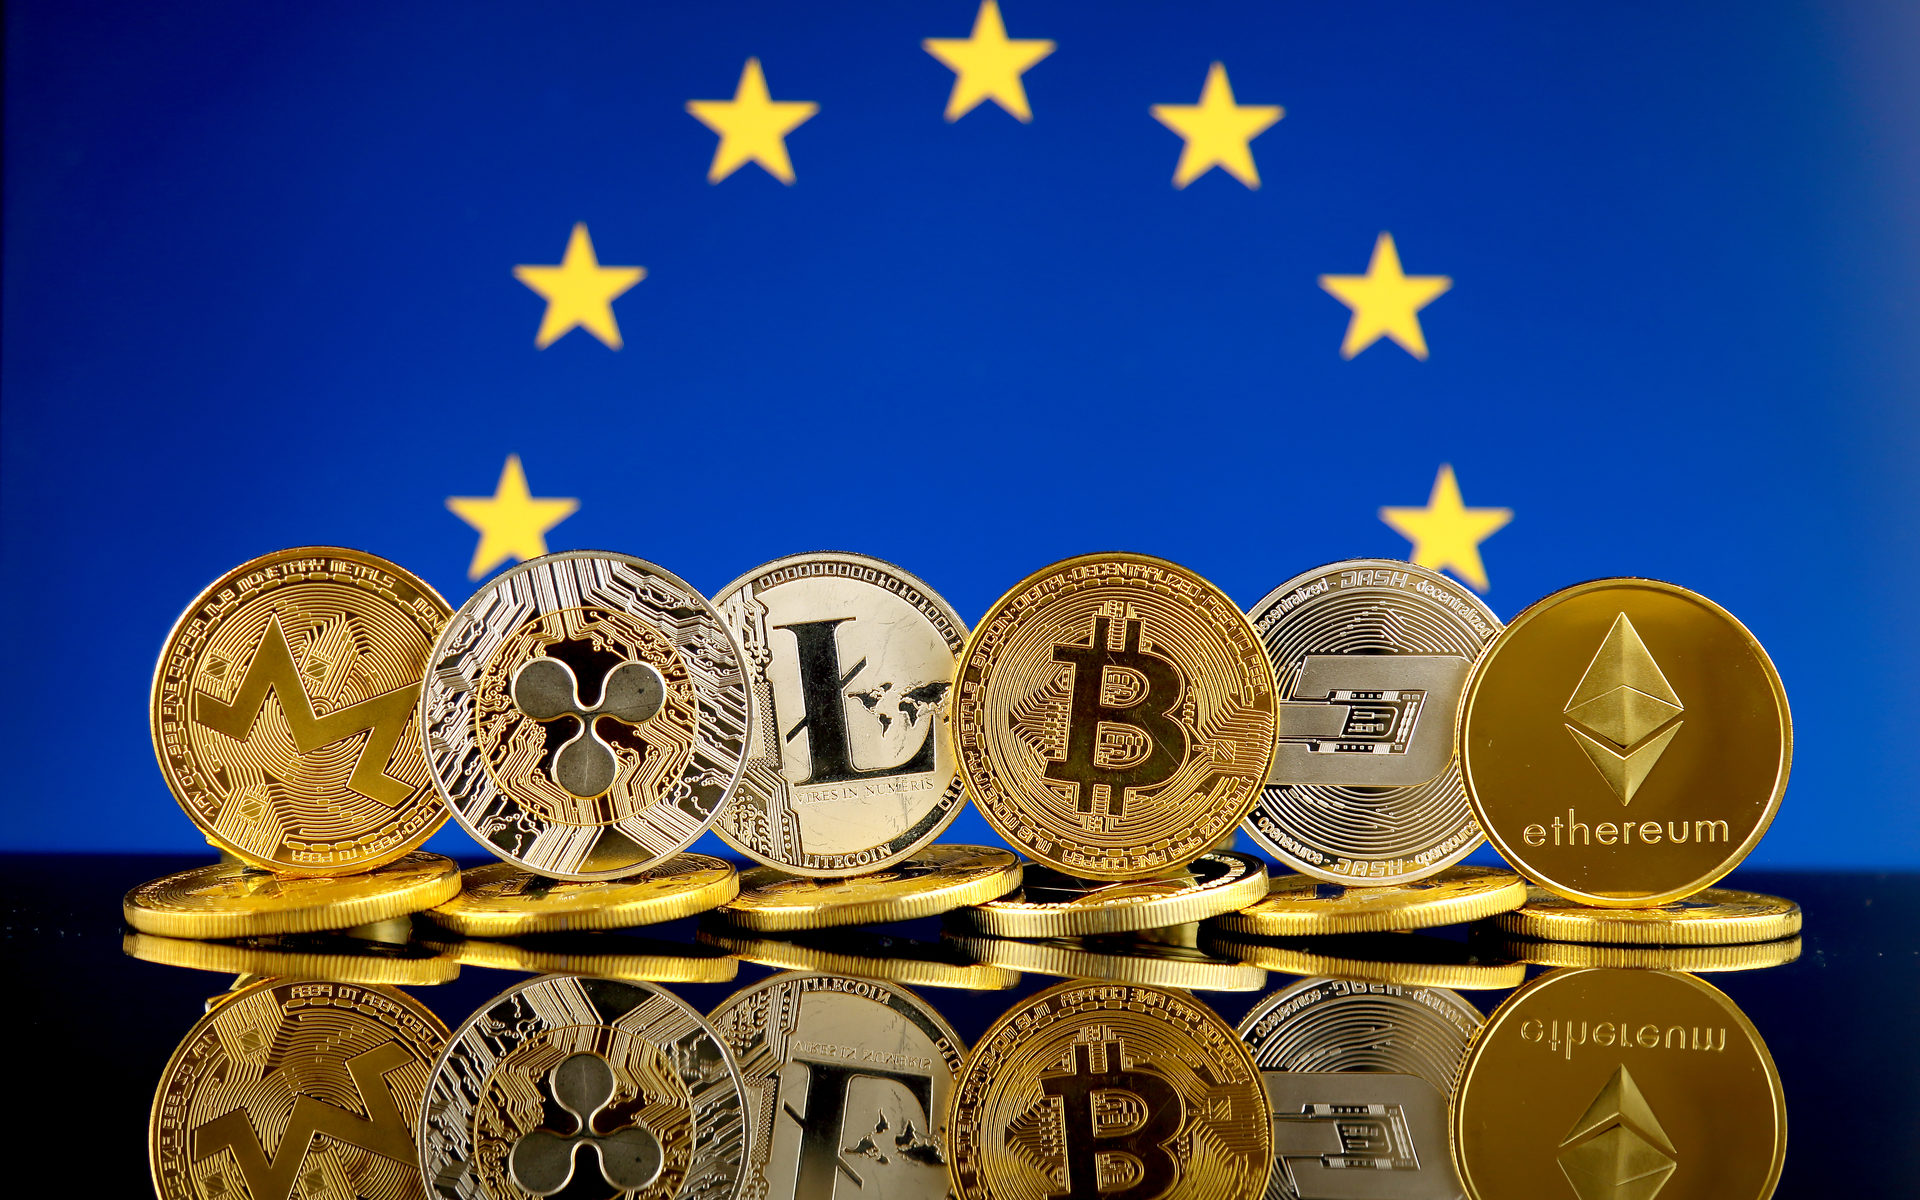 EU Needs a 'Common Approach' to Crypto Regulation Says Commissioner